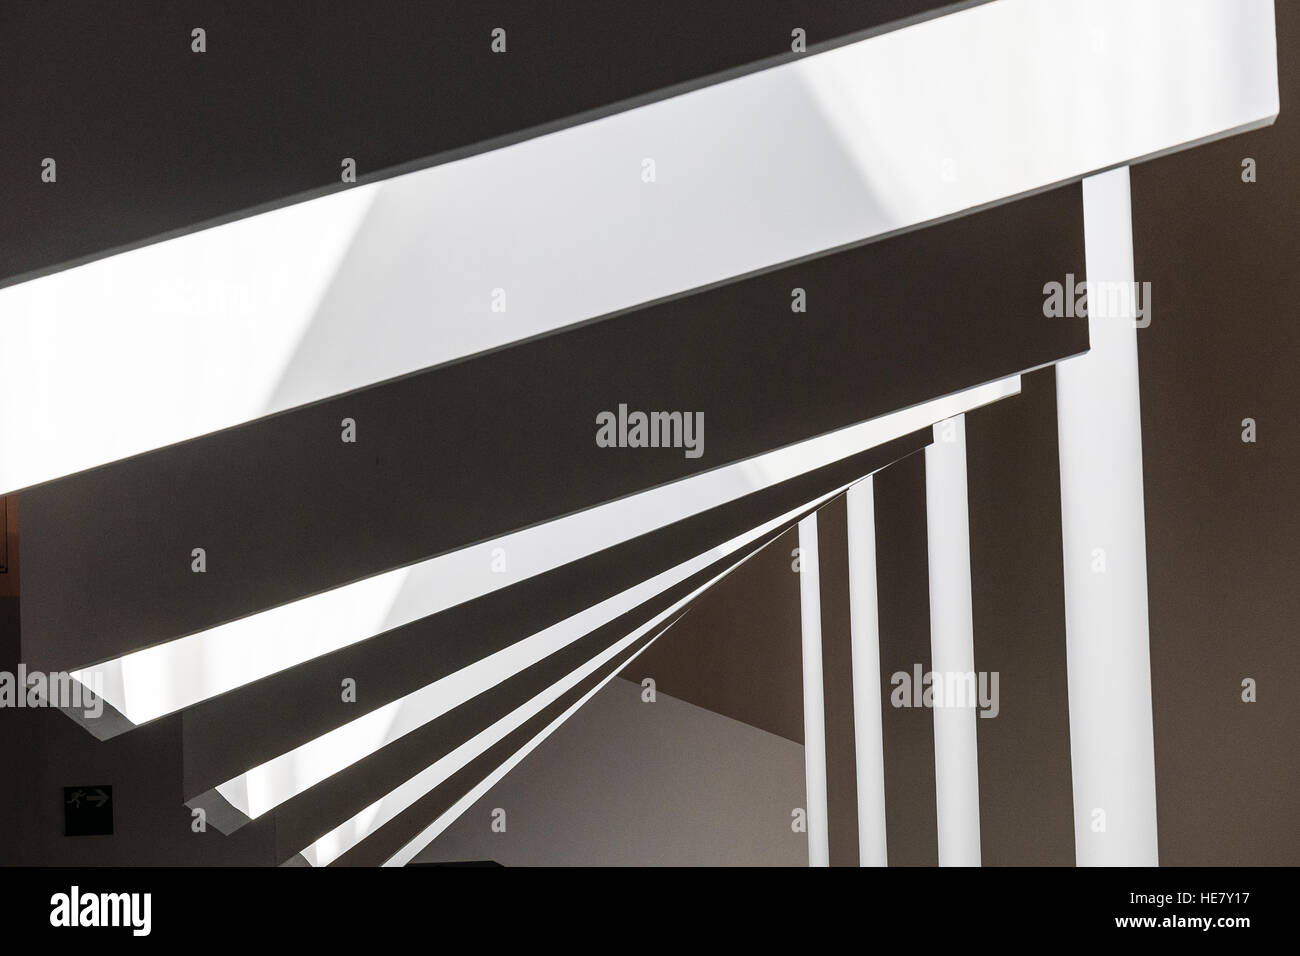 Abstract monochromatic architectural angles inside in Barcelona, Spain. - Stock Image